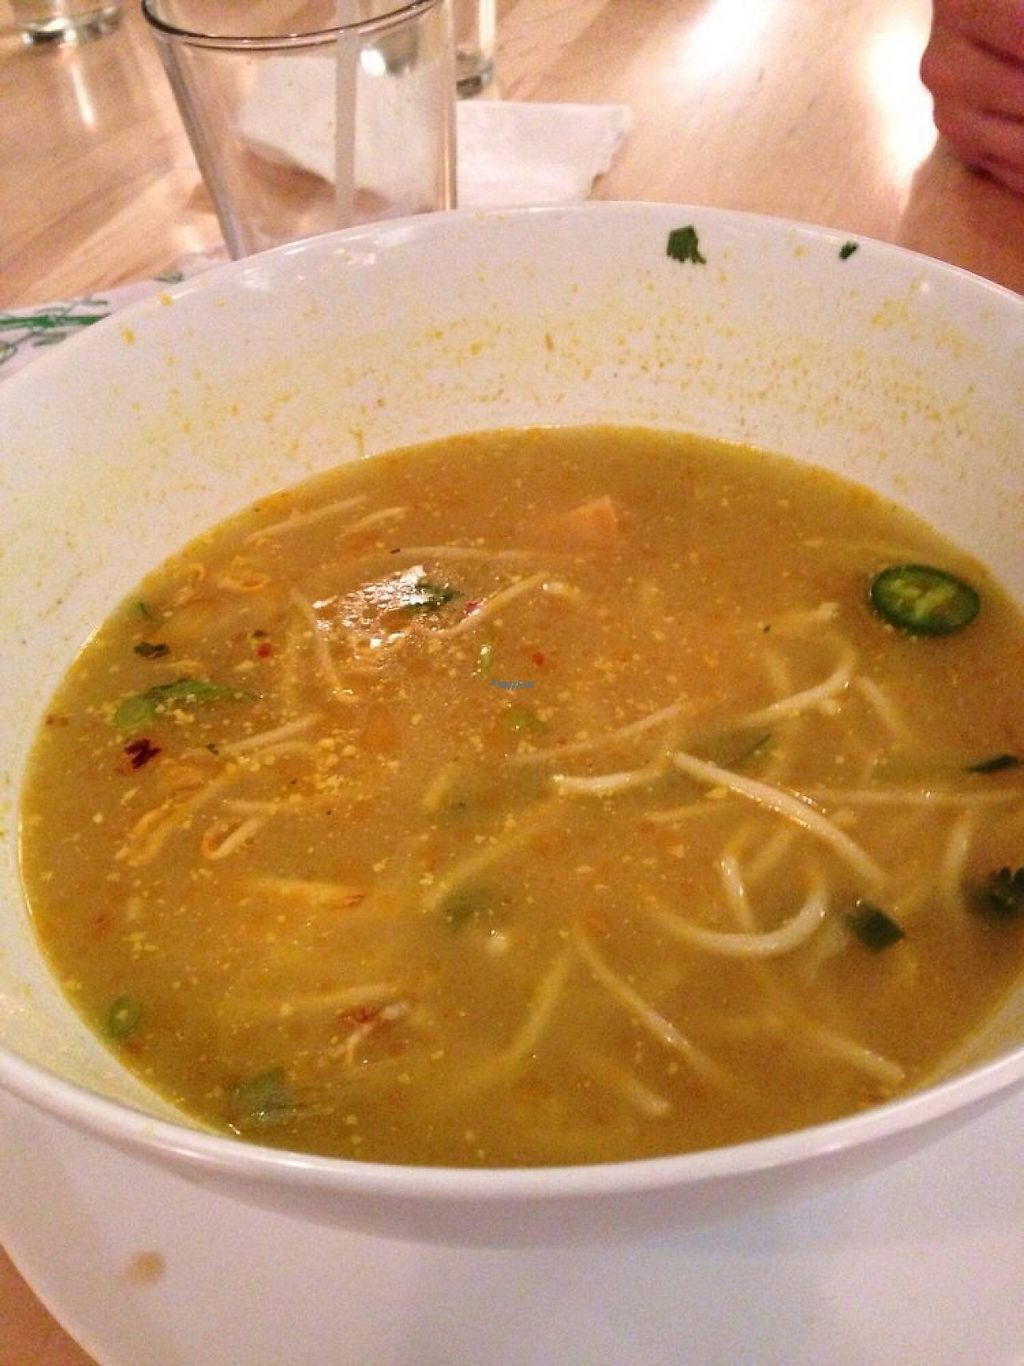 """Photo of Saigon Noodle House - 3rd Ave  by <a href=""""/members/profile/skat"""">skat</a> <br/>Coconut Curry Soup with Veggie Broth and Tofu <br/> November 22, 2016  - <a href='/contact/abuse/image/78778/193284'>Report</a>"""